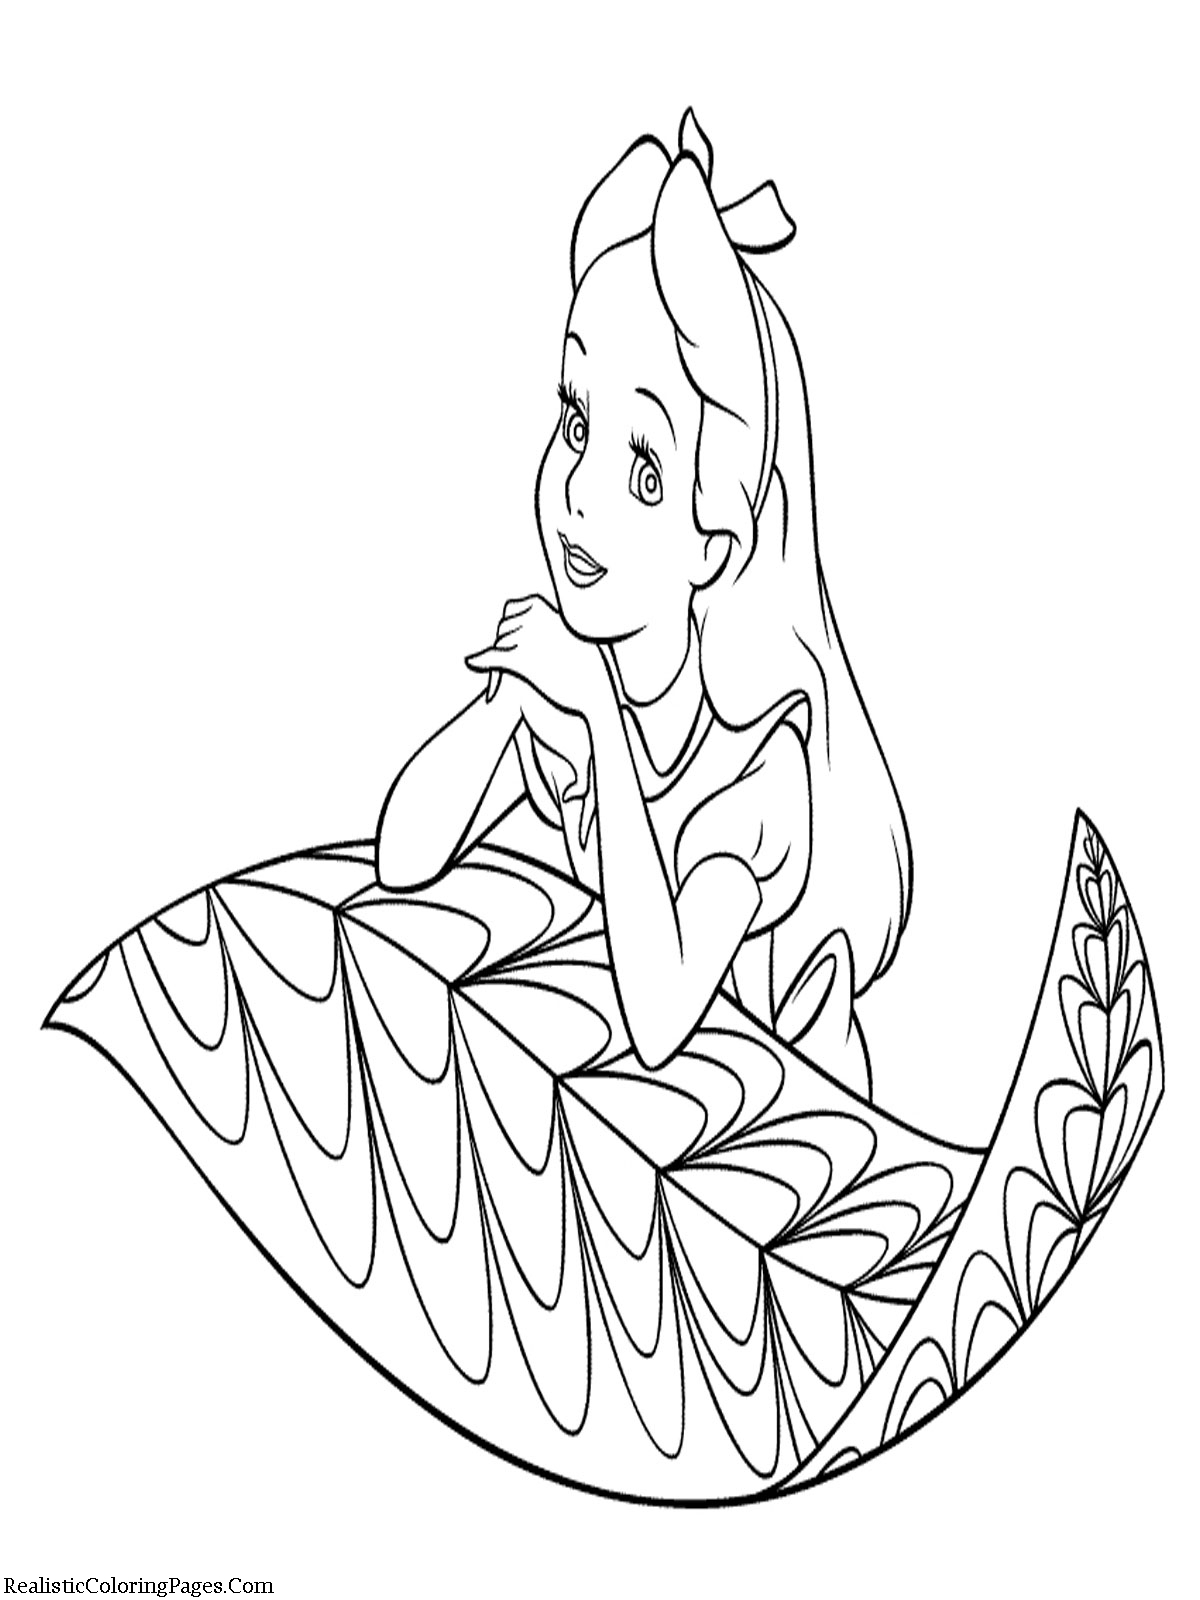 alice in wonderland coloring pages trippy alice in wonderland coloring pages coloring home in pages alice coloring wonderland